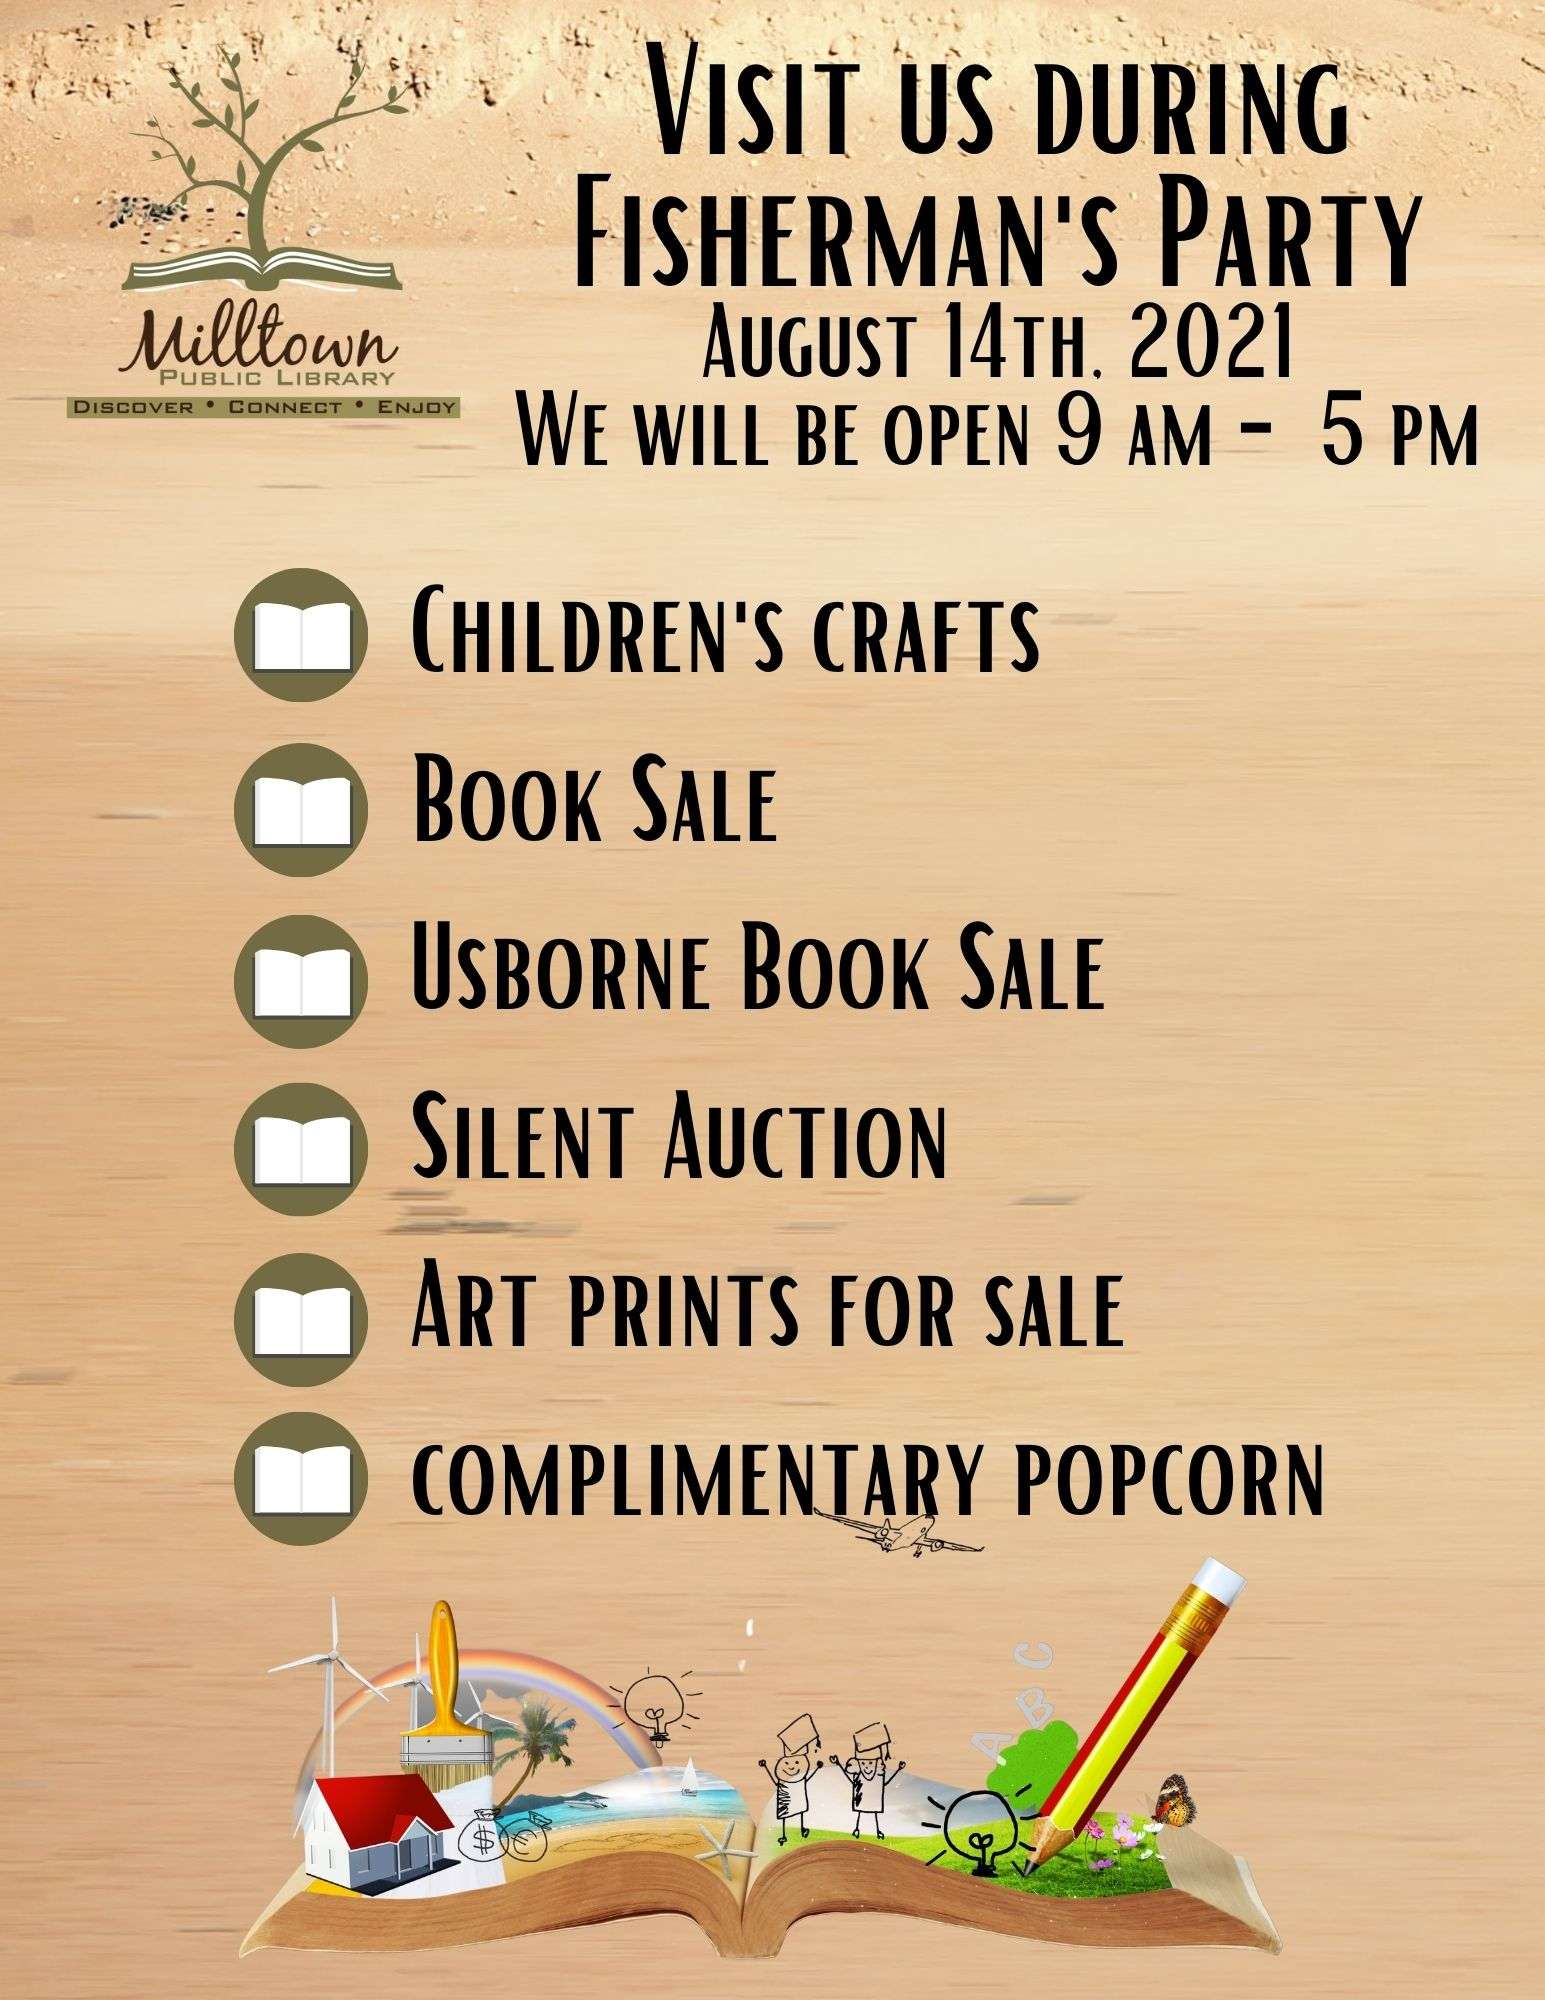 Visit us during Fisherman's Party • Aug 14th 9am - 5pm • Book Sale, Crafts, Silent Auction, Art Prints Sale, Complimentary Popcorn